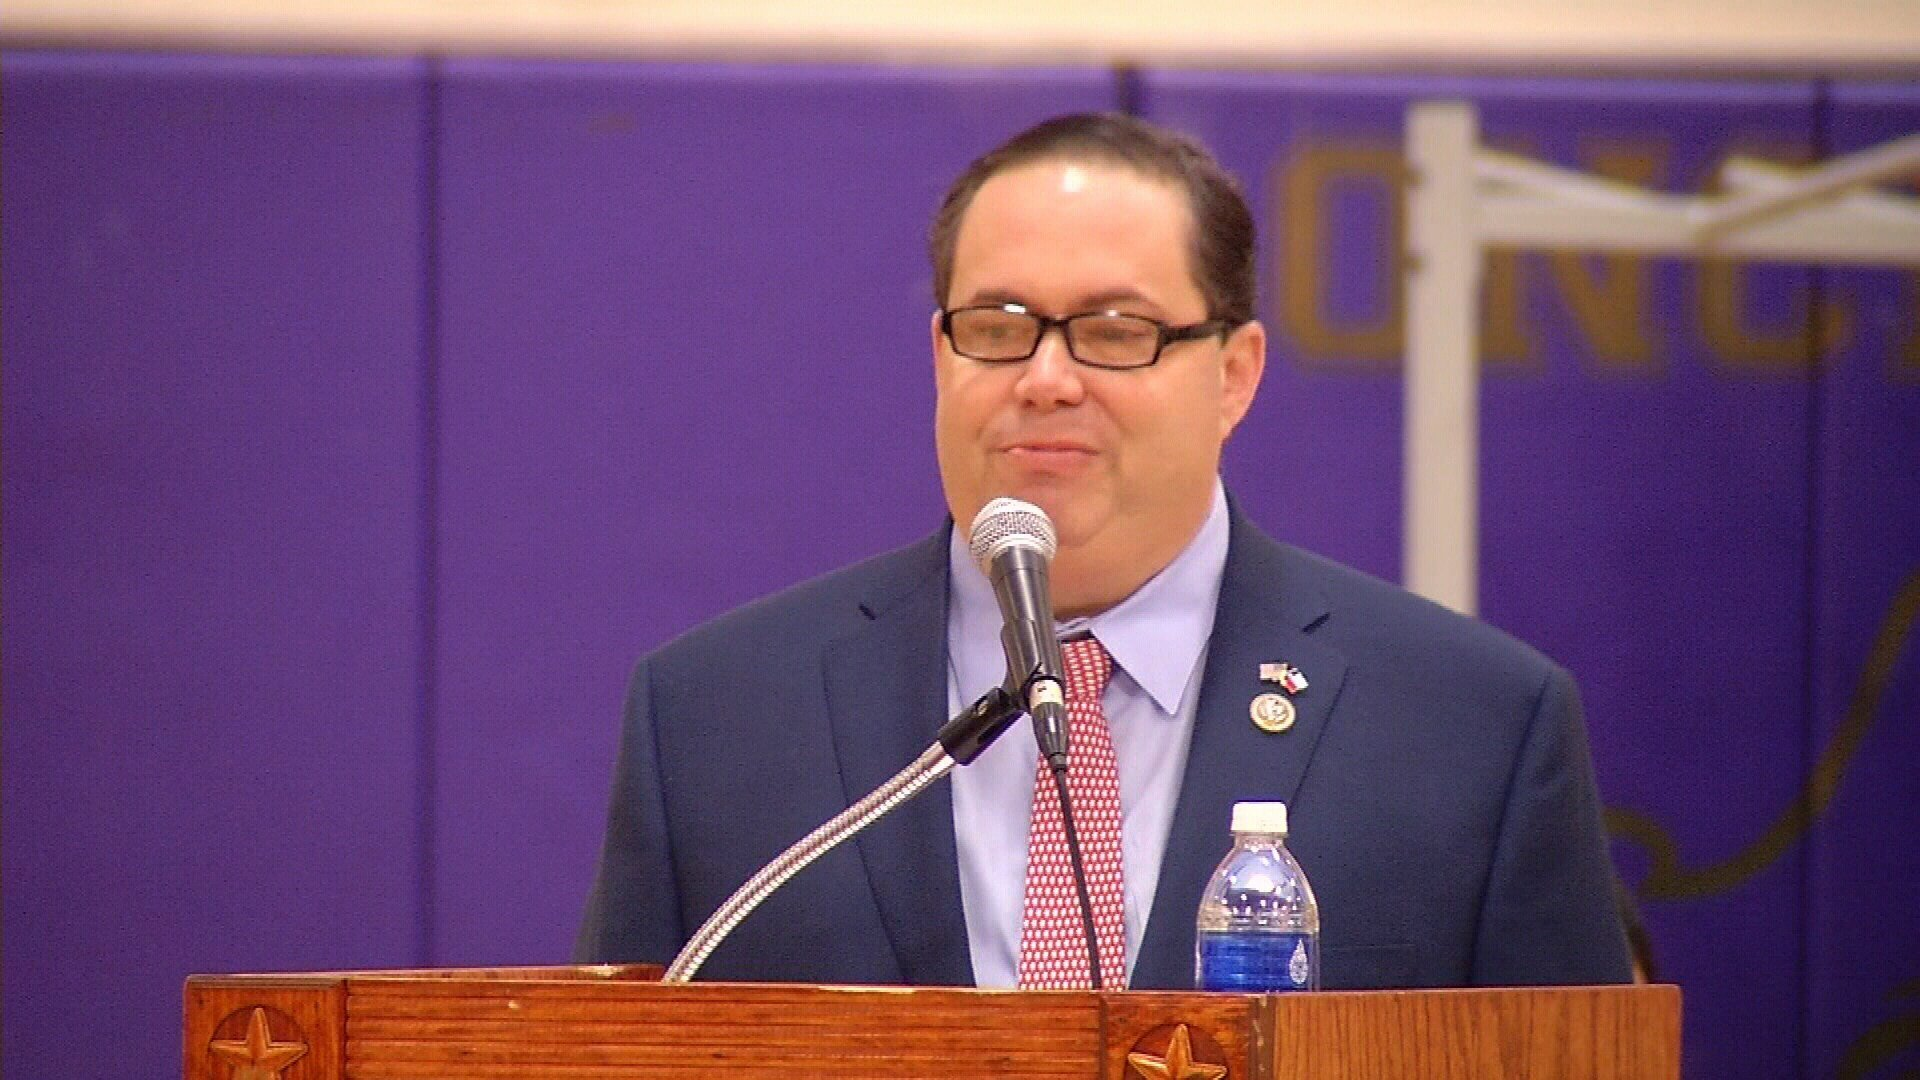 Rep. Blake Farenthold's hometown newspaper is calling on the Congressman to resign after he admitted that he used $84,000 in taxpayer money to settle a sexual harassment lawsuit.